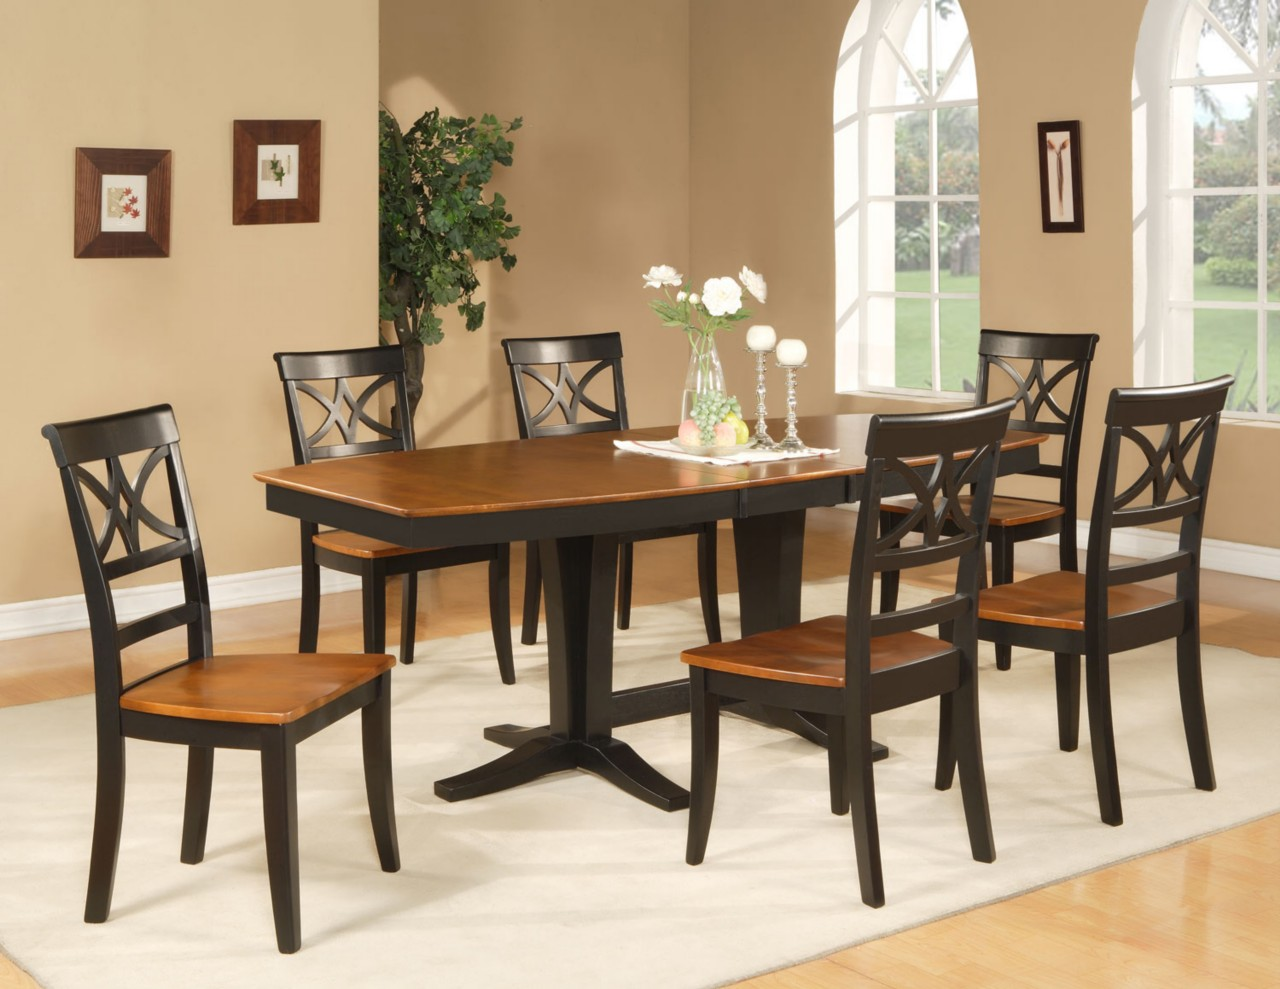 dining room sets that seat 8 | 9PC DINETTE DINING ROOM SET OCTAGONAL TABLE w/ 8 WOODEN ...